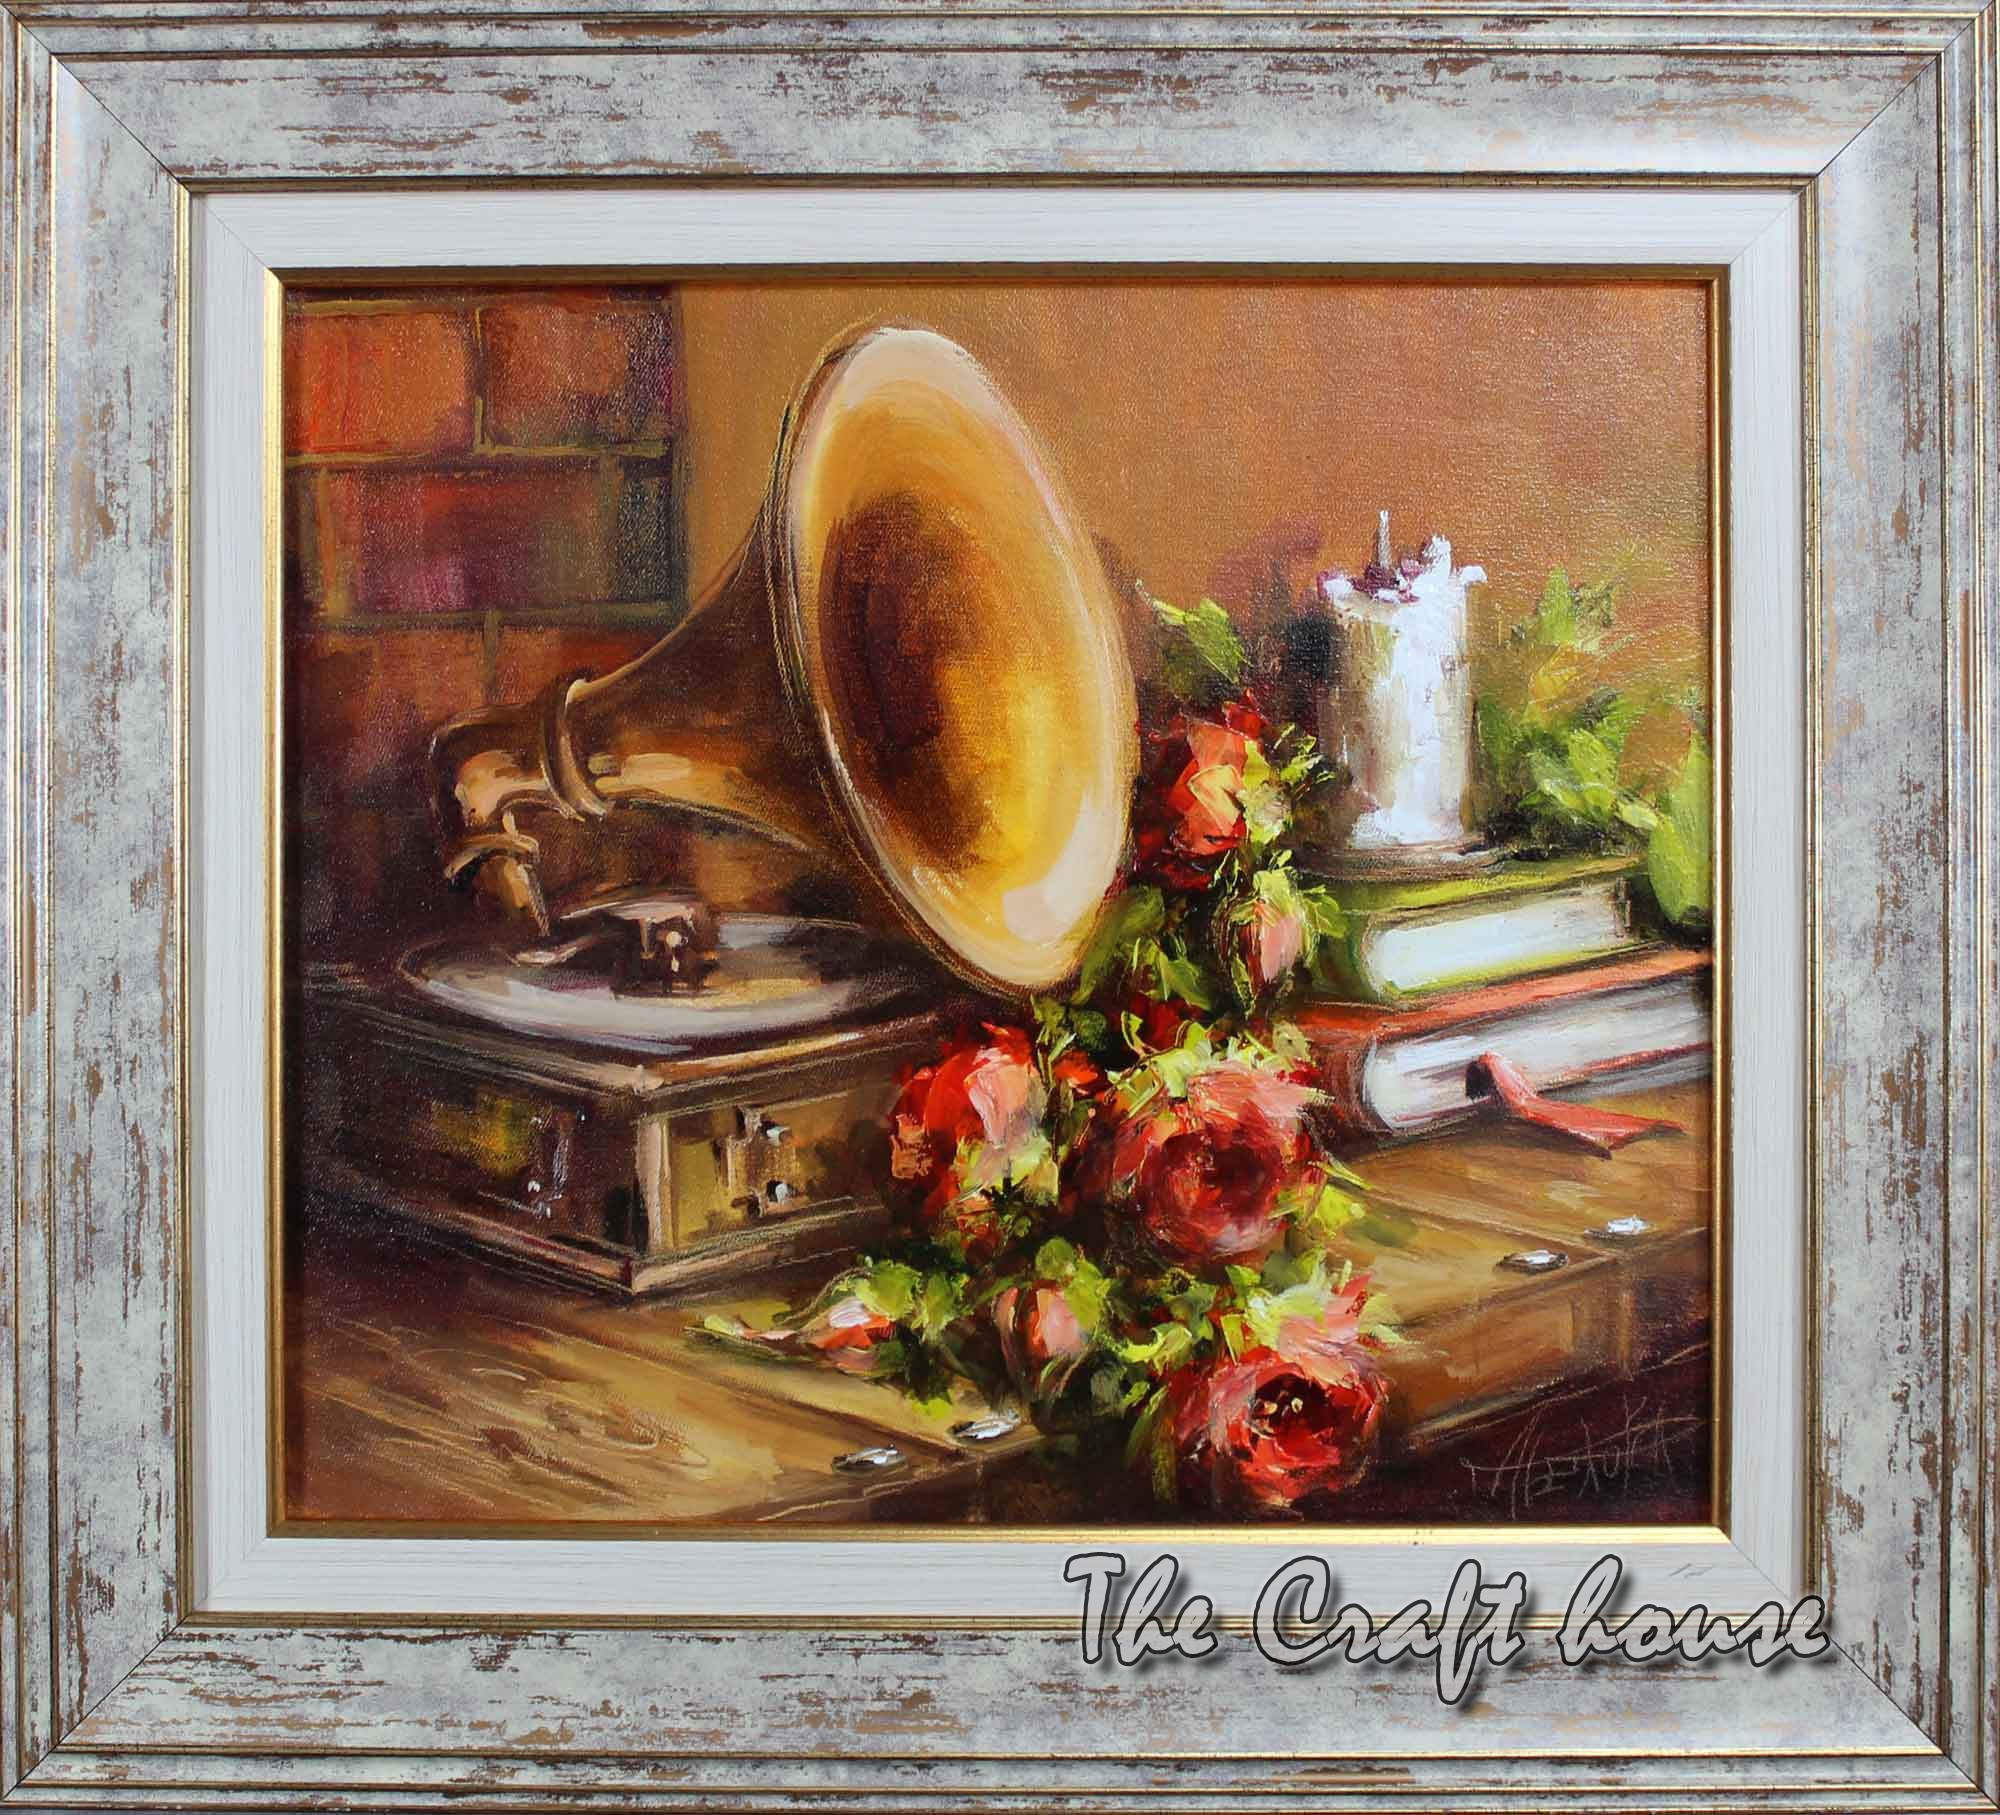 The Old Gramophone